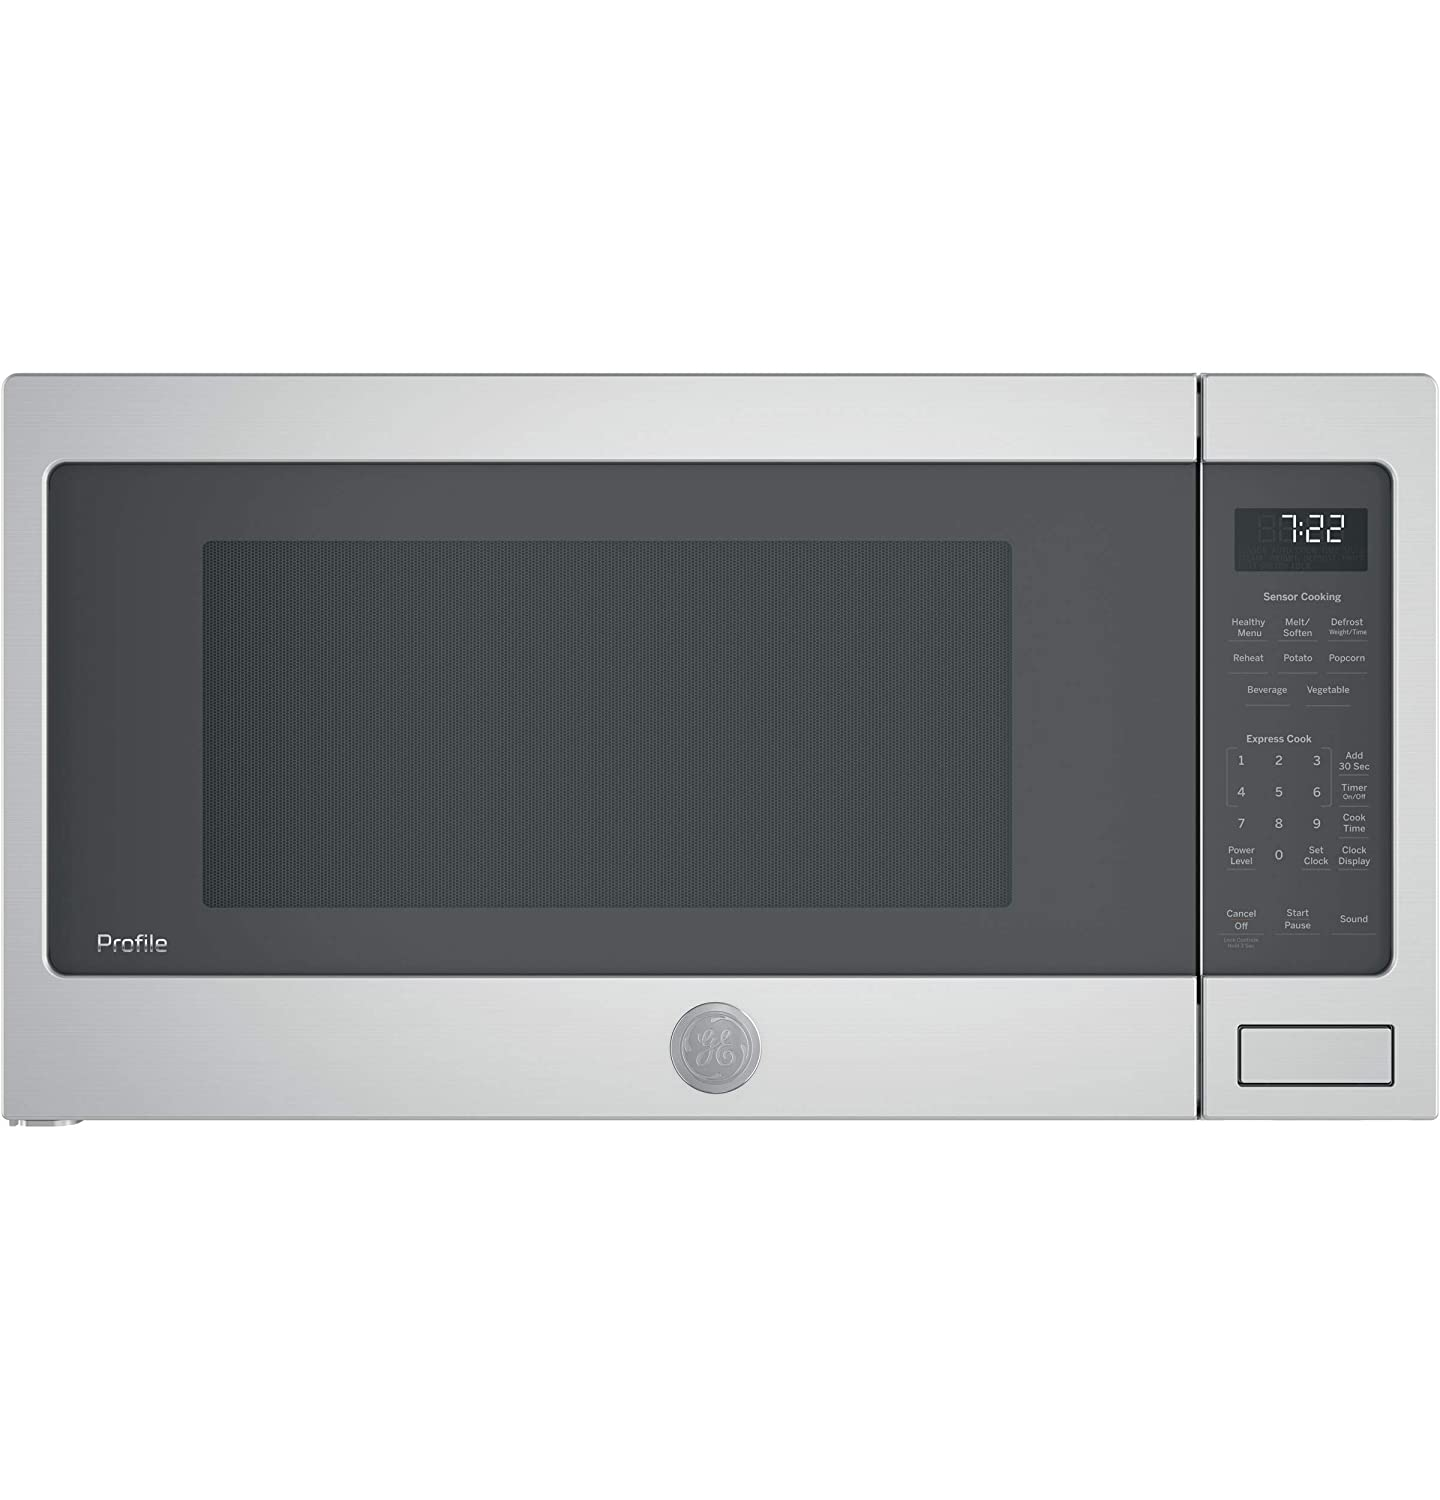 GE Profile PES7227SLSS 2.2 cu. ft. Countertop Microwave in Stainless Steel with Sensor Cooking (Certified Refurbished)